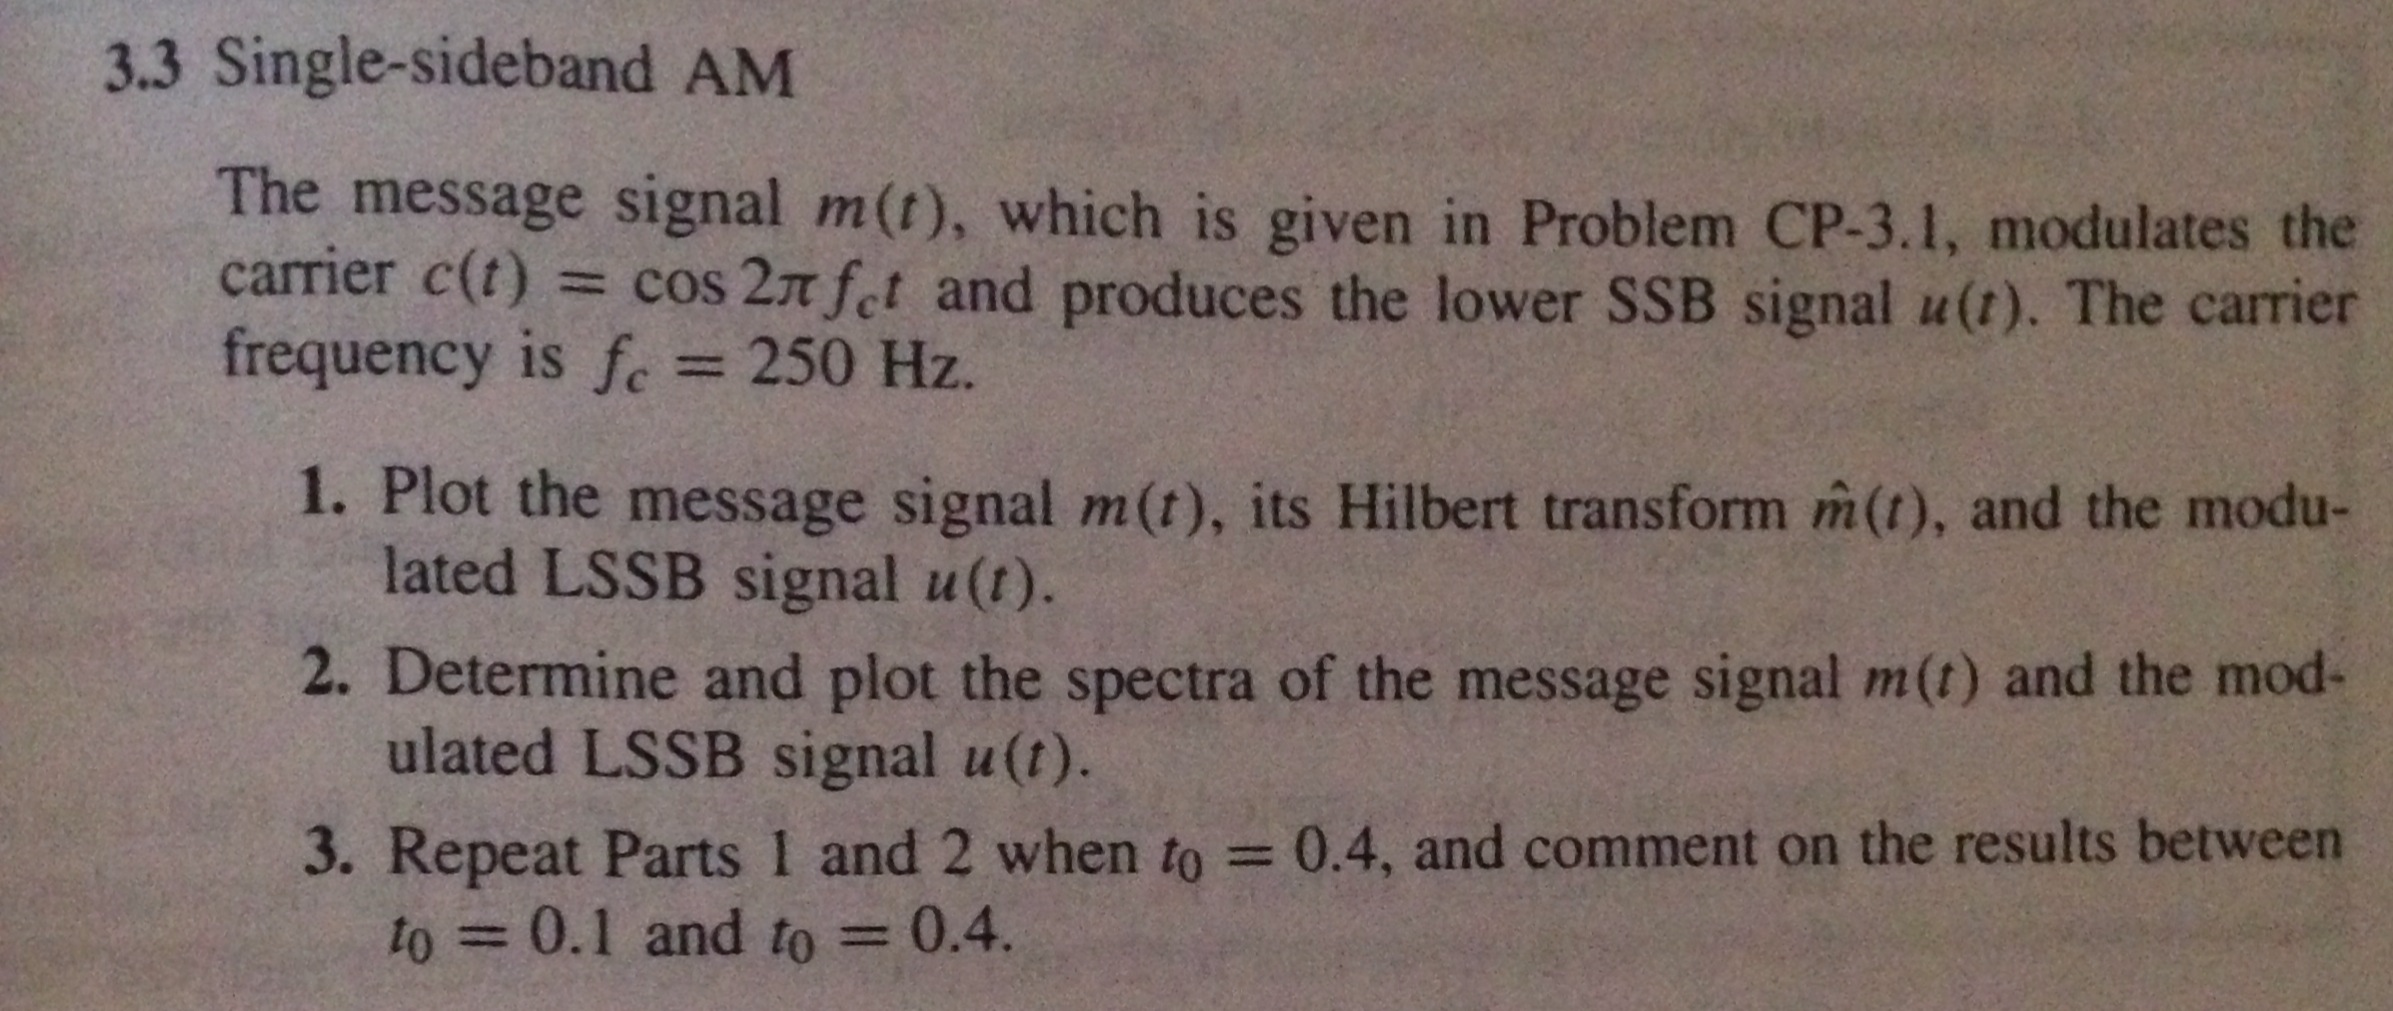 Single-sideband AM The message signal m(t), which